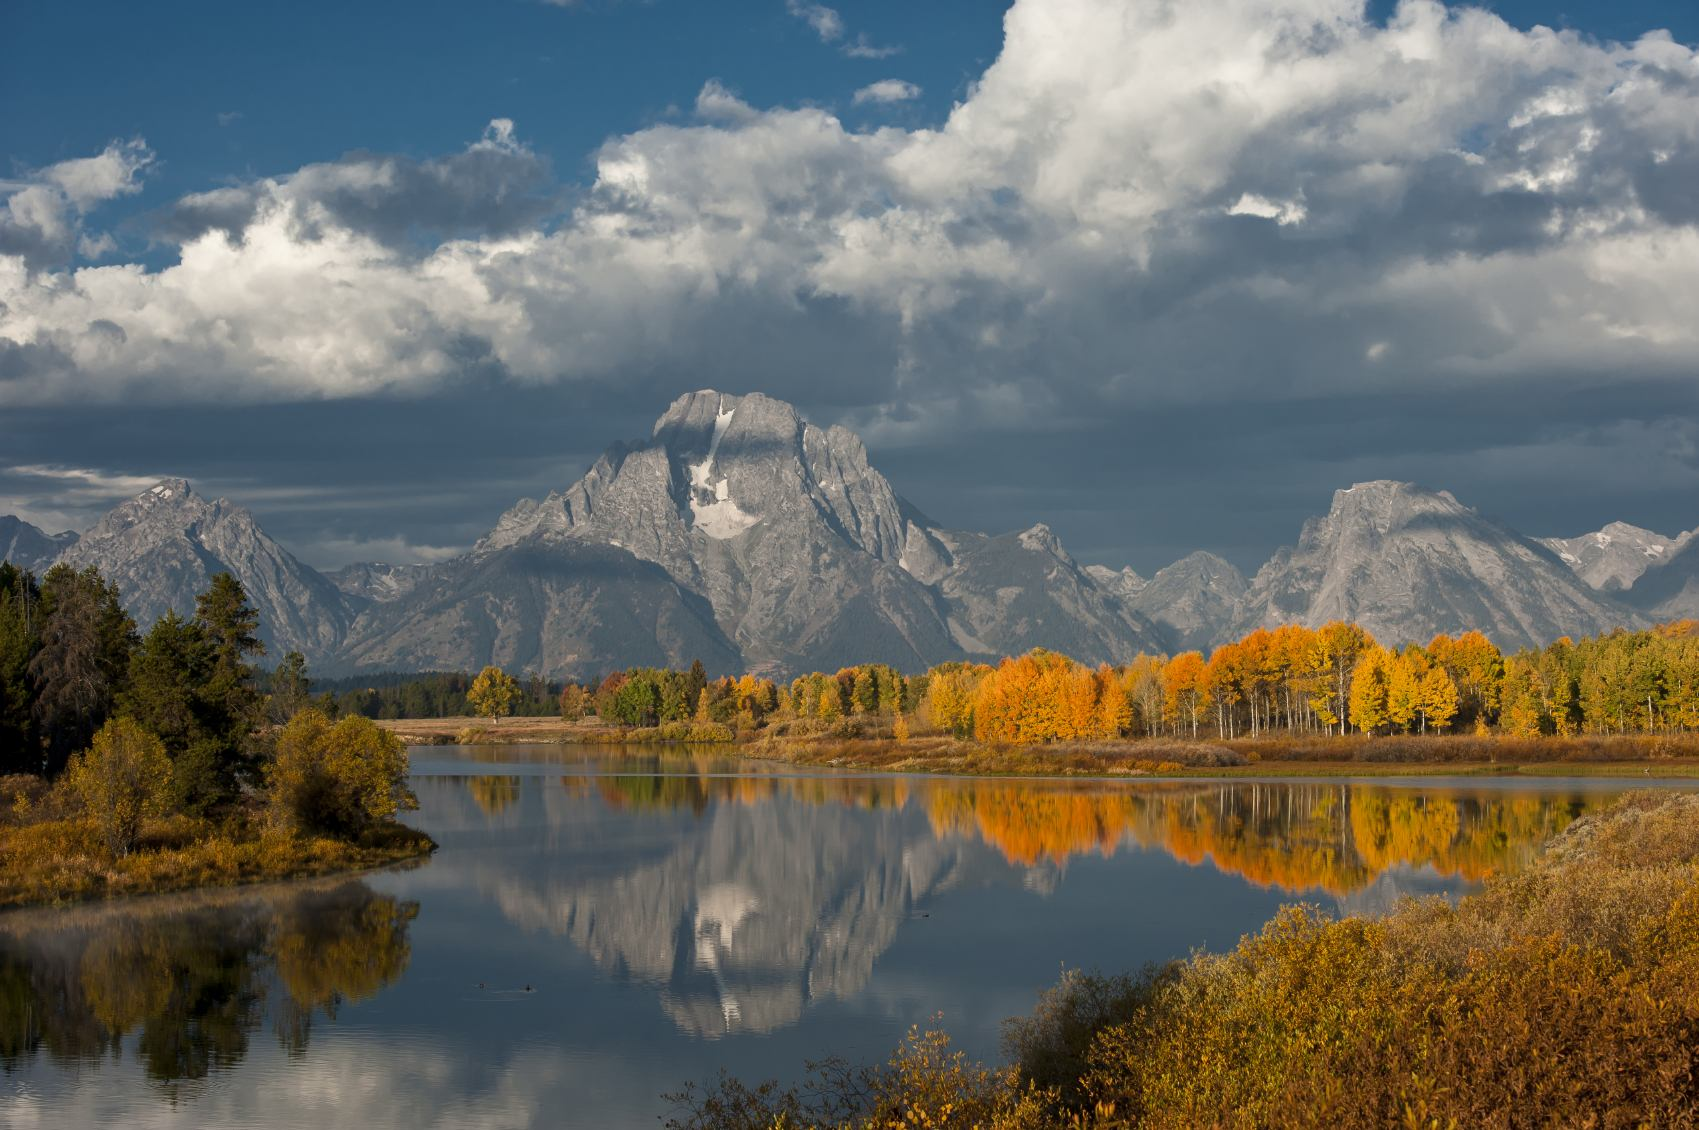 Image Courtesy of Grand Teton Lodging Company